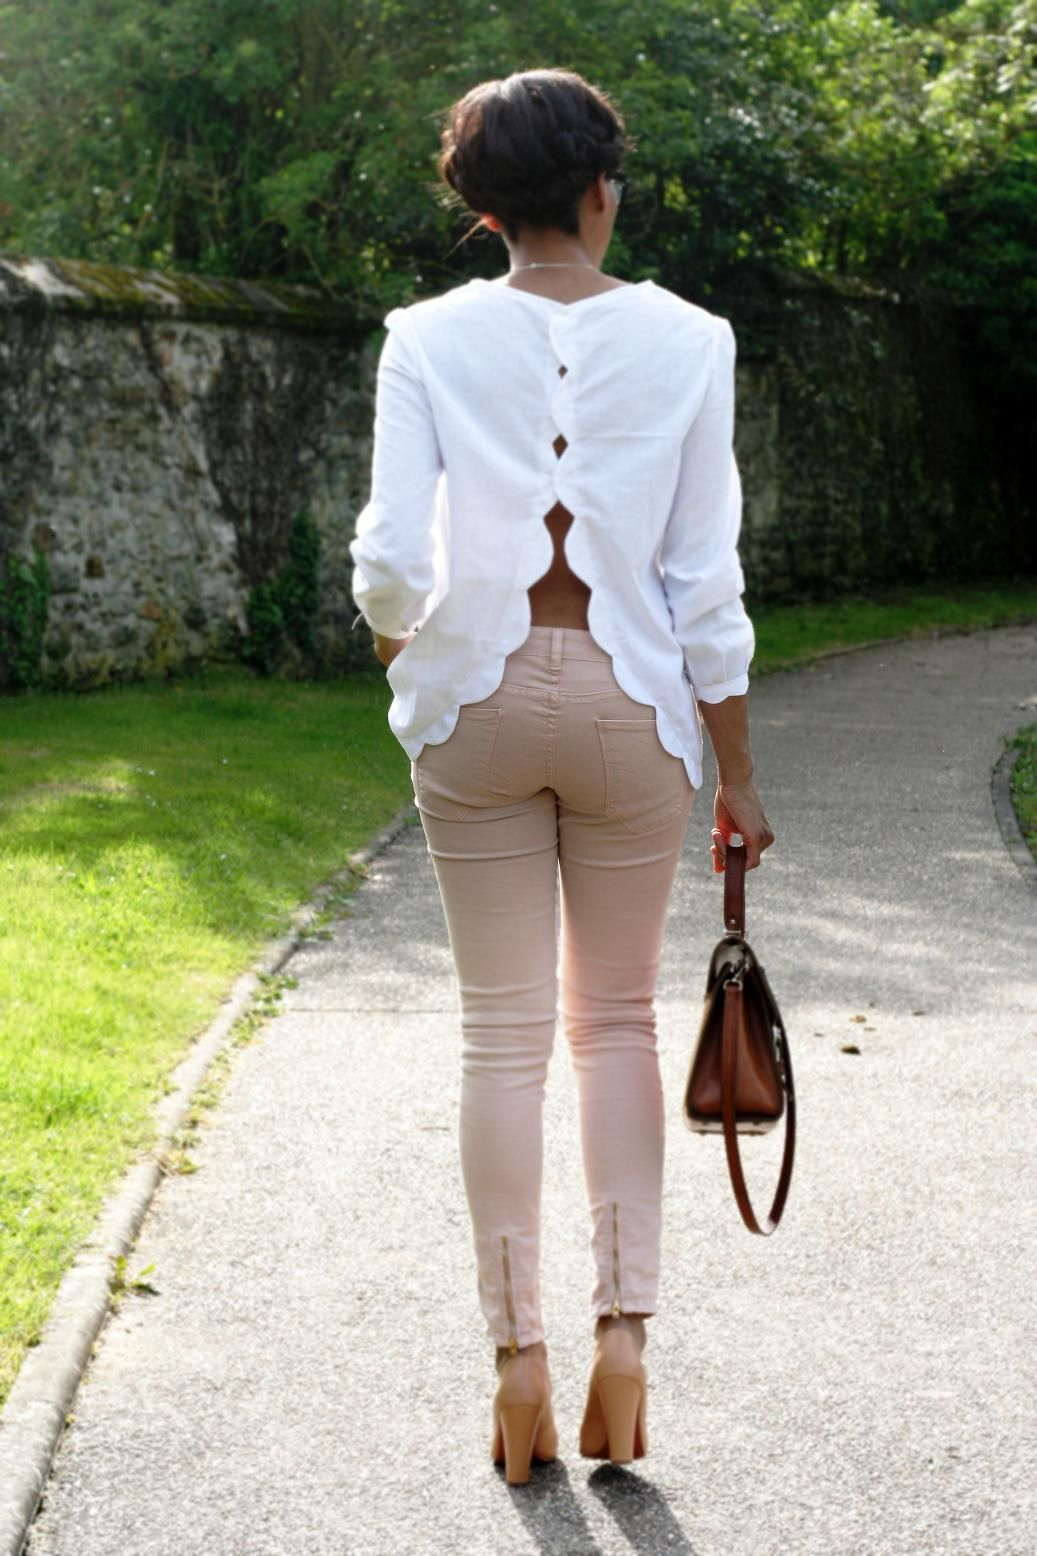 Plan to try this with some thrifted silk blouses. #yay 3 day weekend    scallops: refashion idea